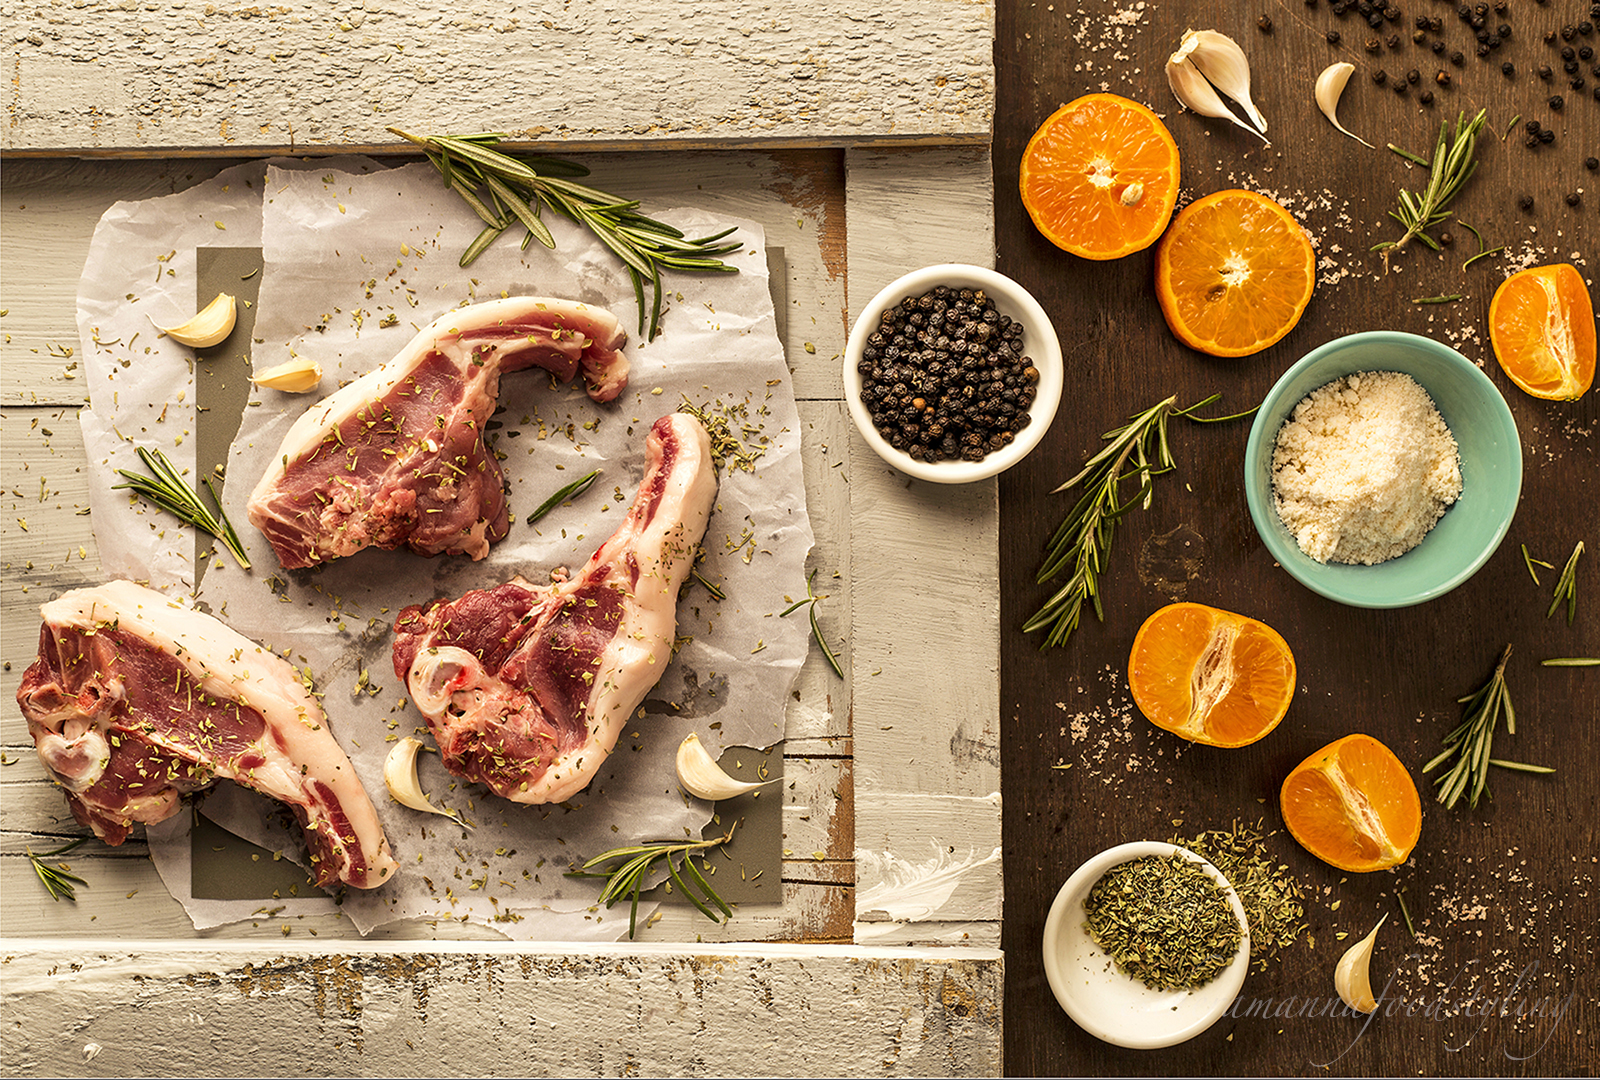 Meat with fresh ingredients,ready to be prepped,